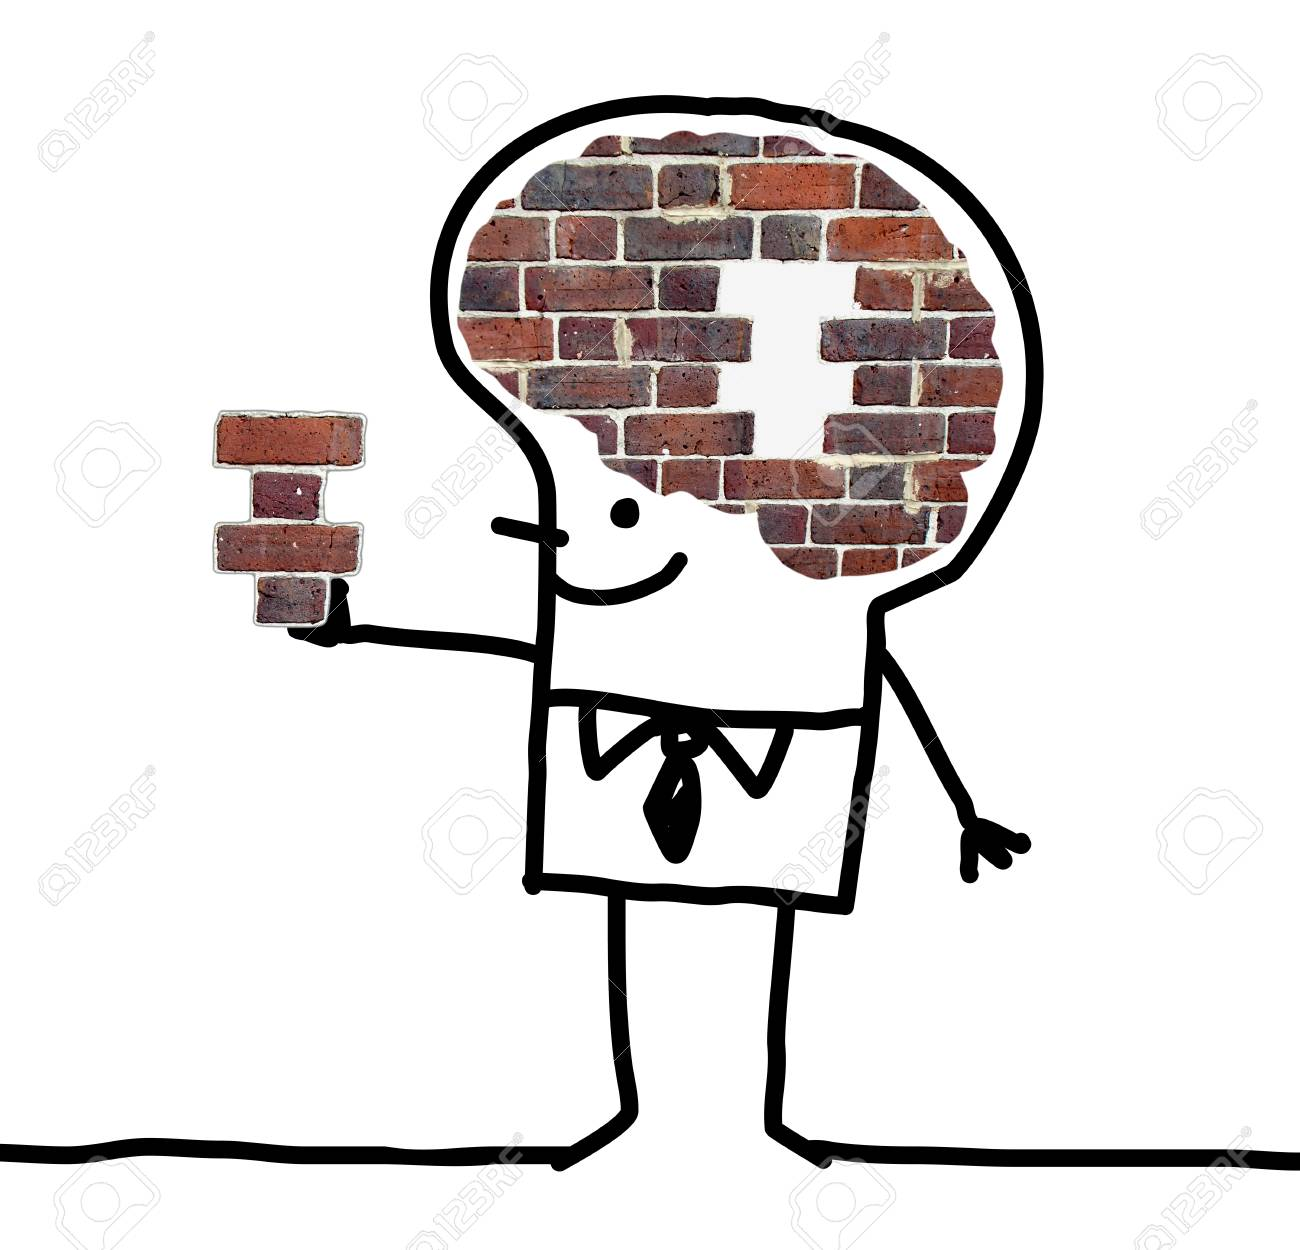 Cartoon big brain man wall and puzzle stock photo picture and cartoon big brain man wall and puzzle stock photo 73832354 thecheapjerseys Gallery